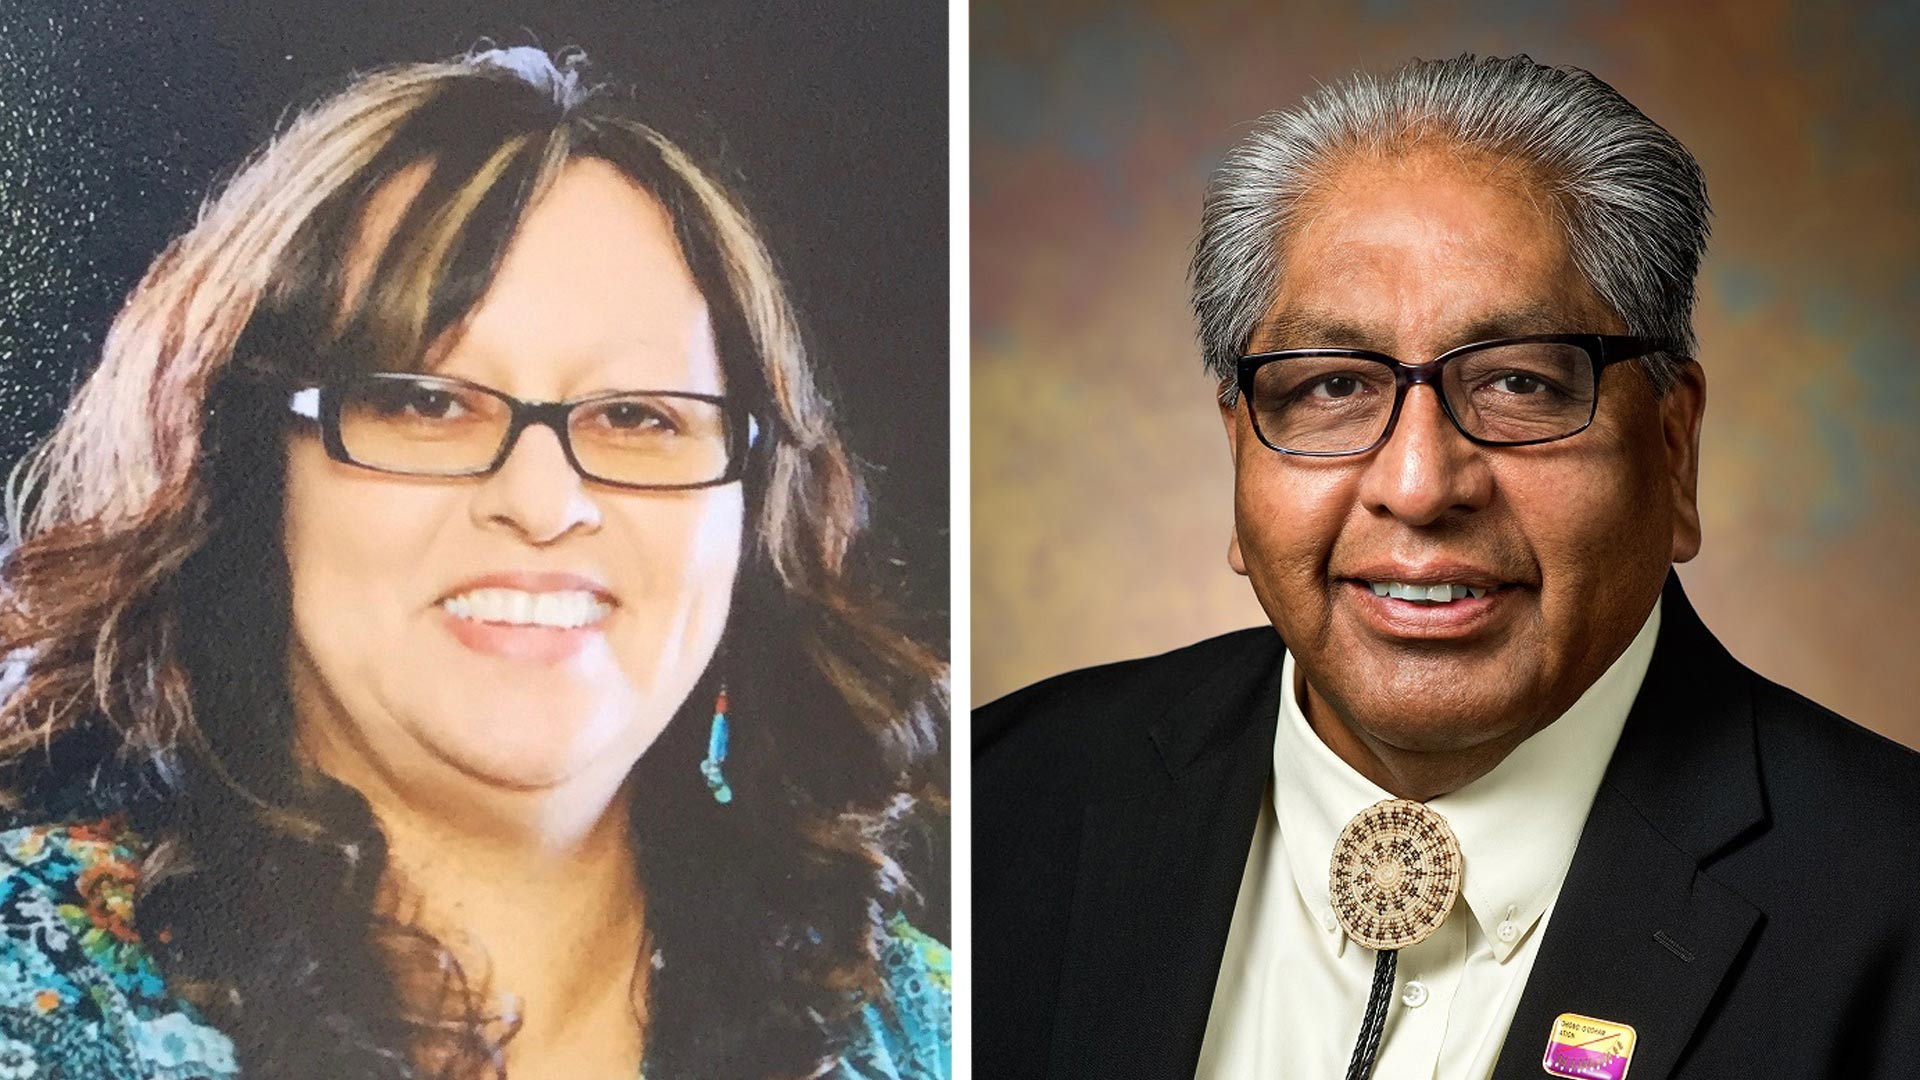 Ned Norris Jr. (right) and Wavalene Saunders won the election for Chairman and Vice Chairwoman on the Tohono O'odham Nation for 2019 to 2023.